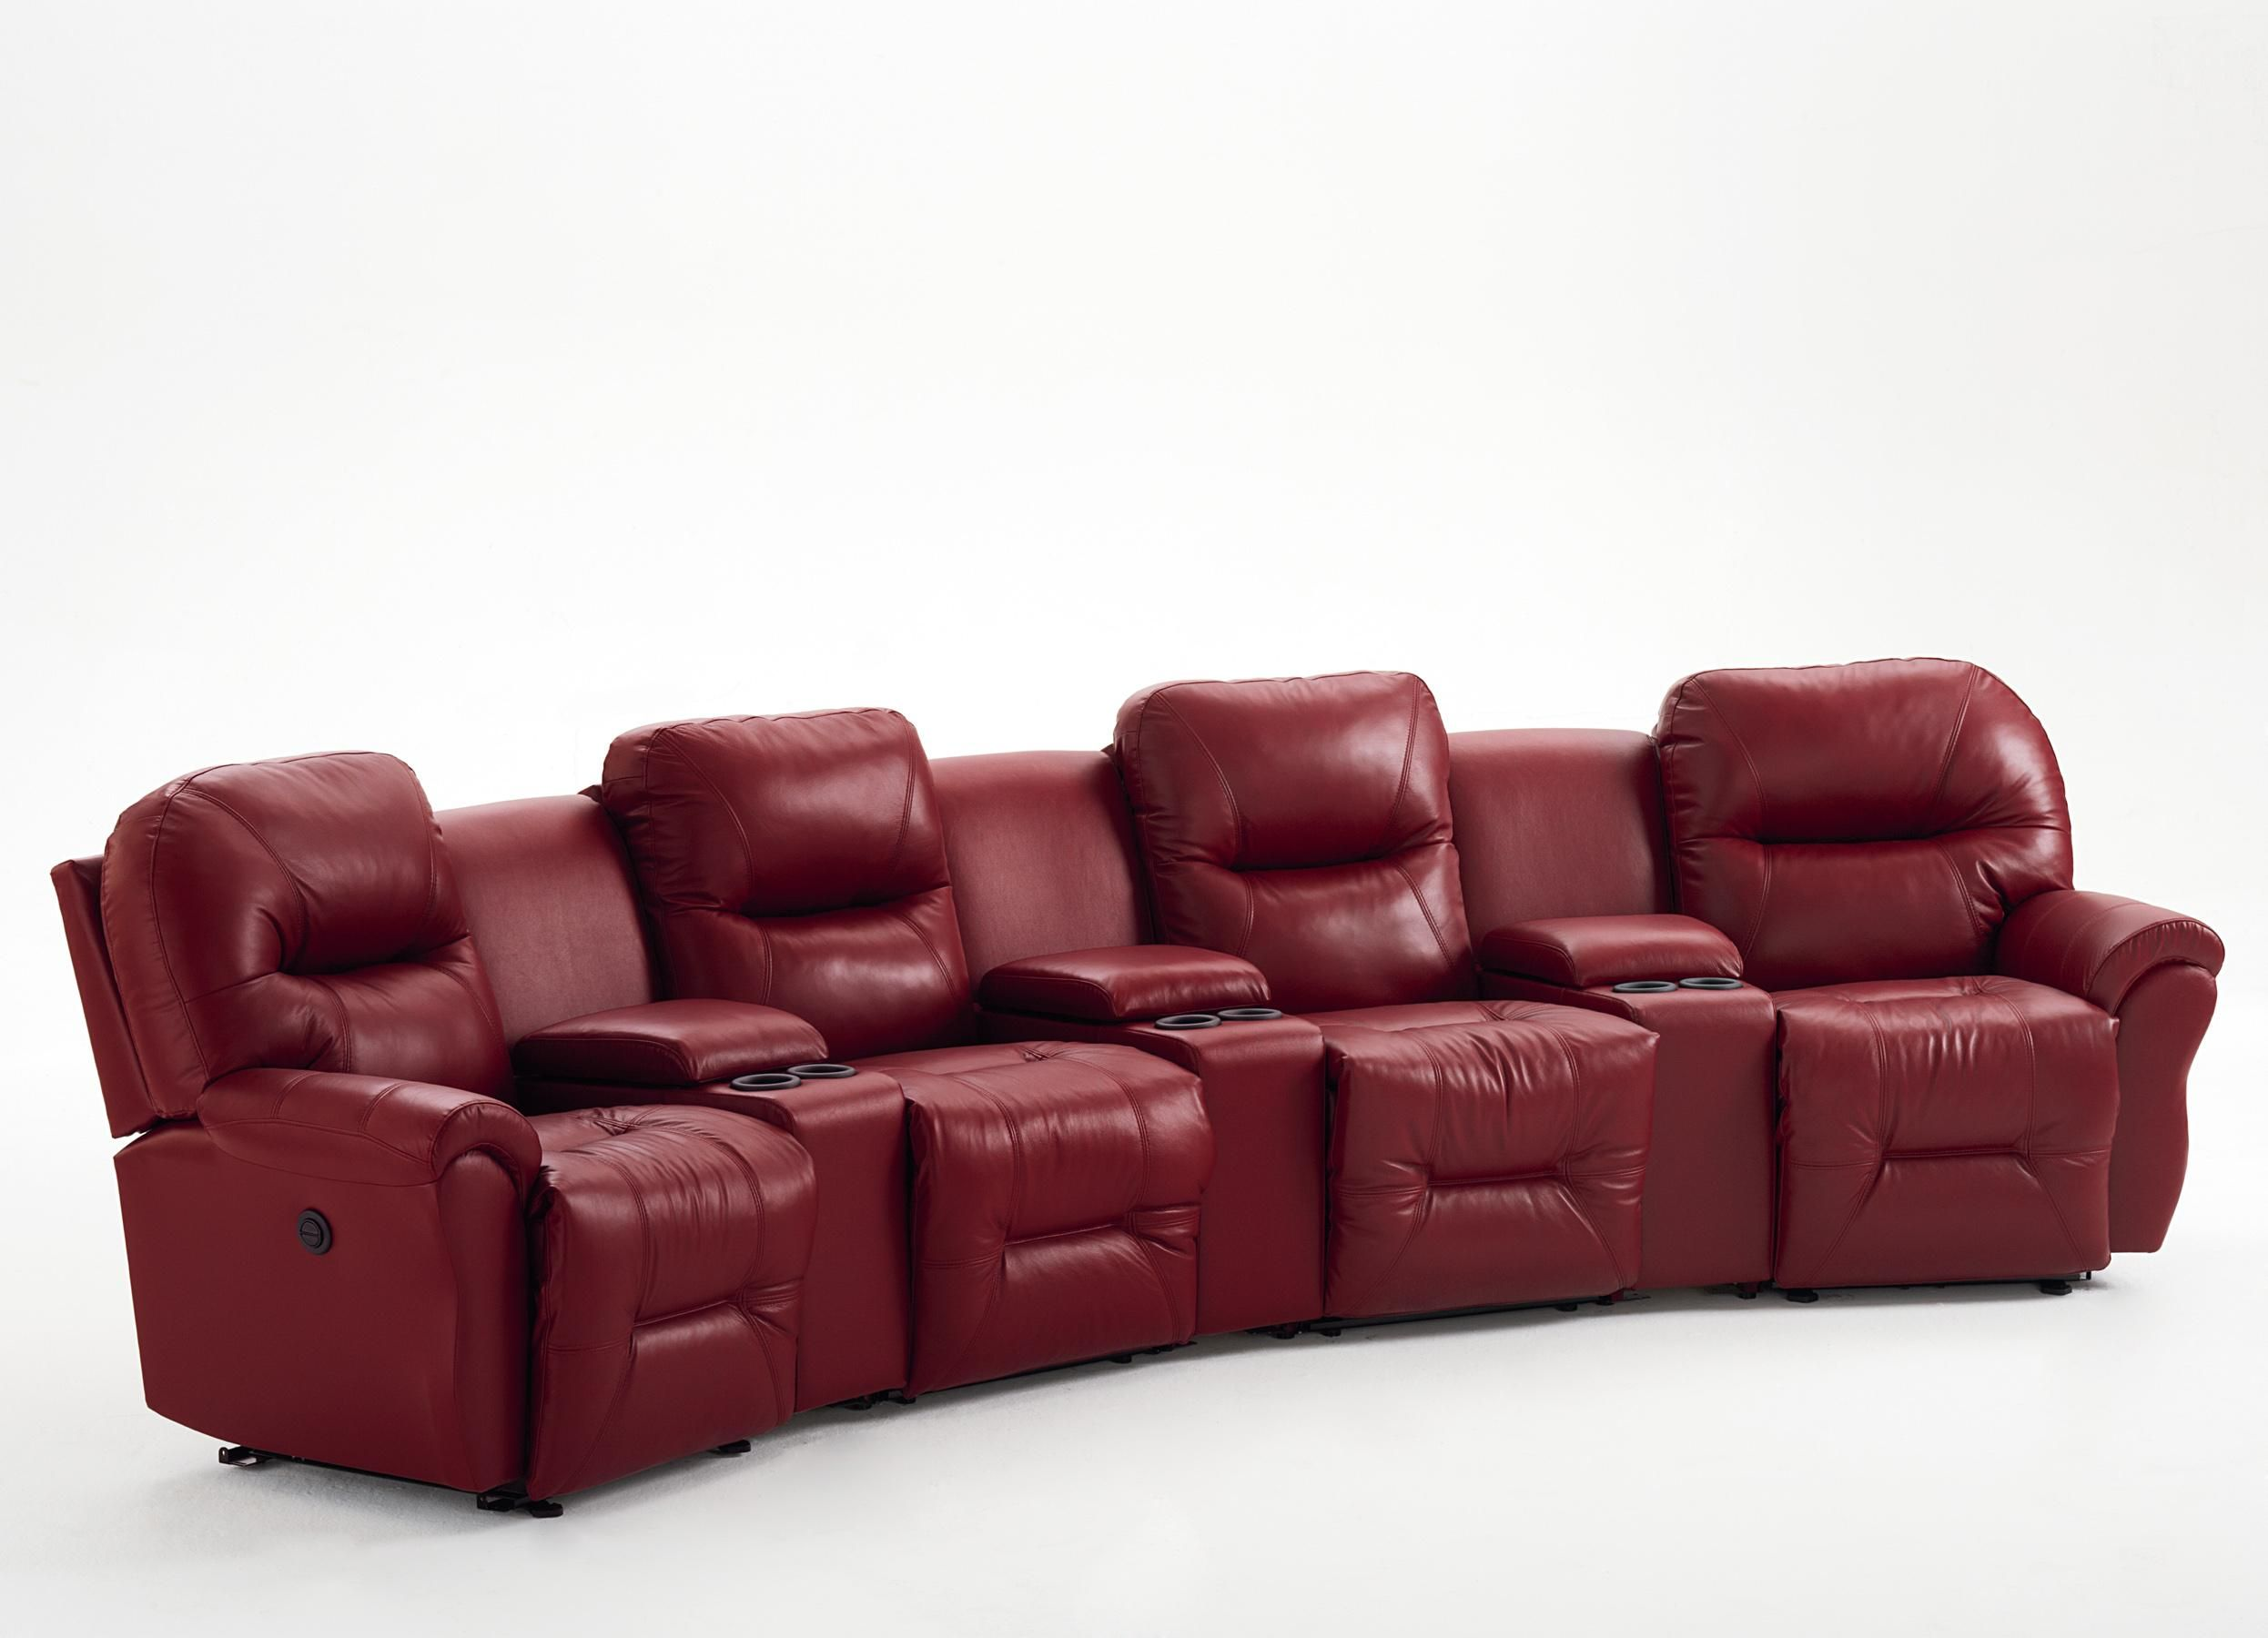 Bodie 4 Seater Power Reclining Home Theater Group By Best Home